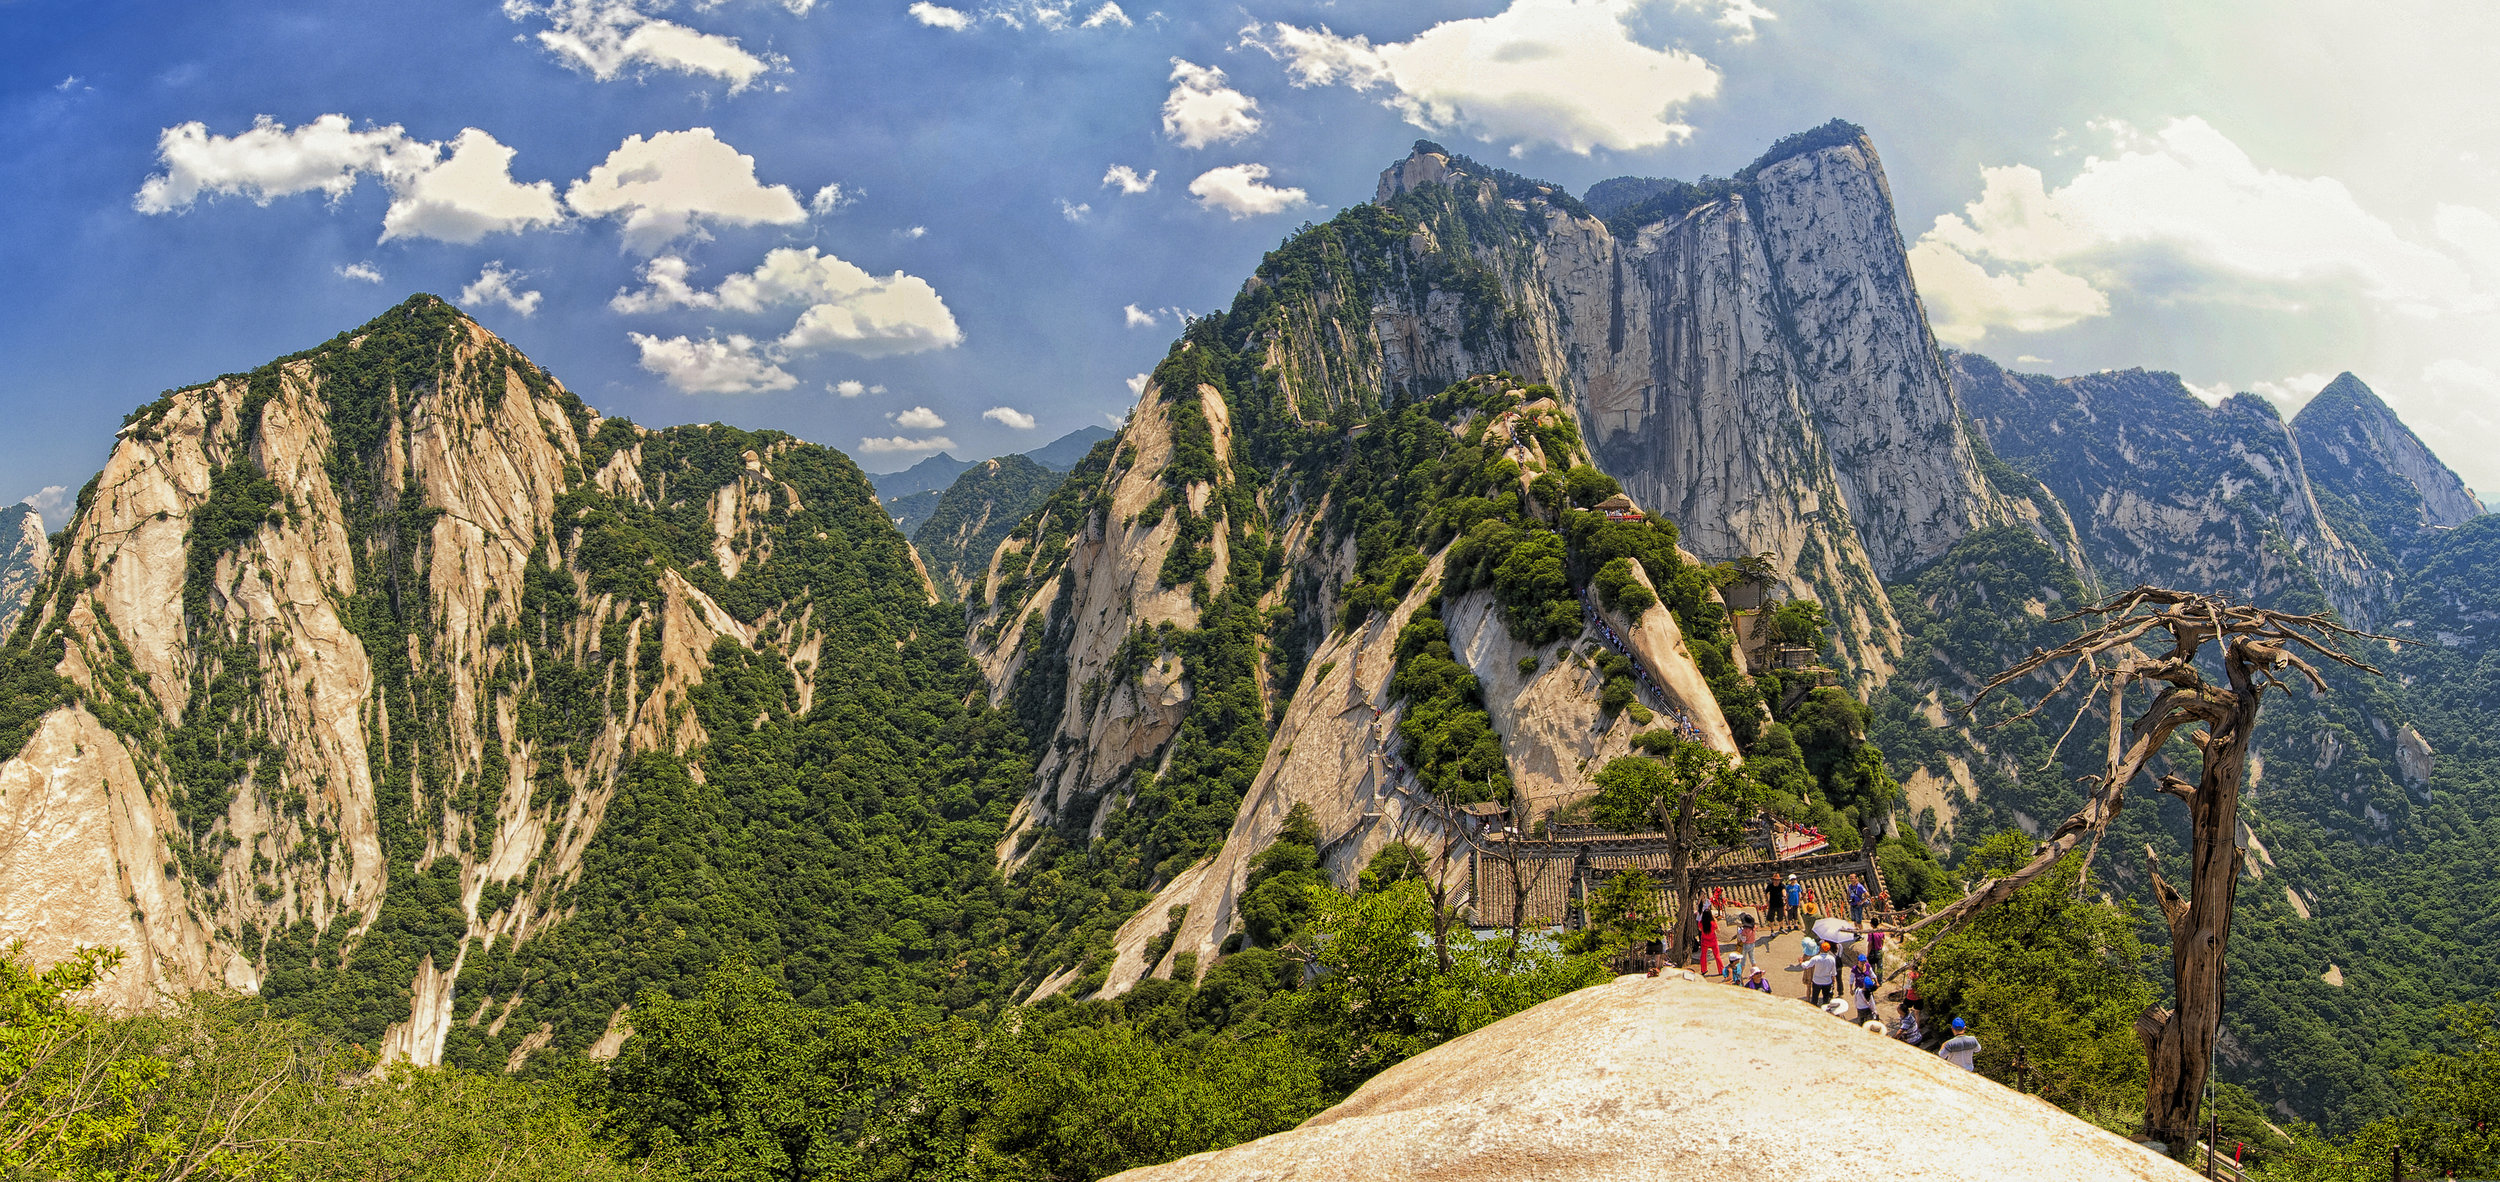 Mount Huashan, china by chensiyuan:wikicommoms.jpg